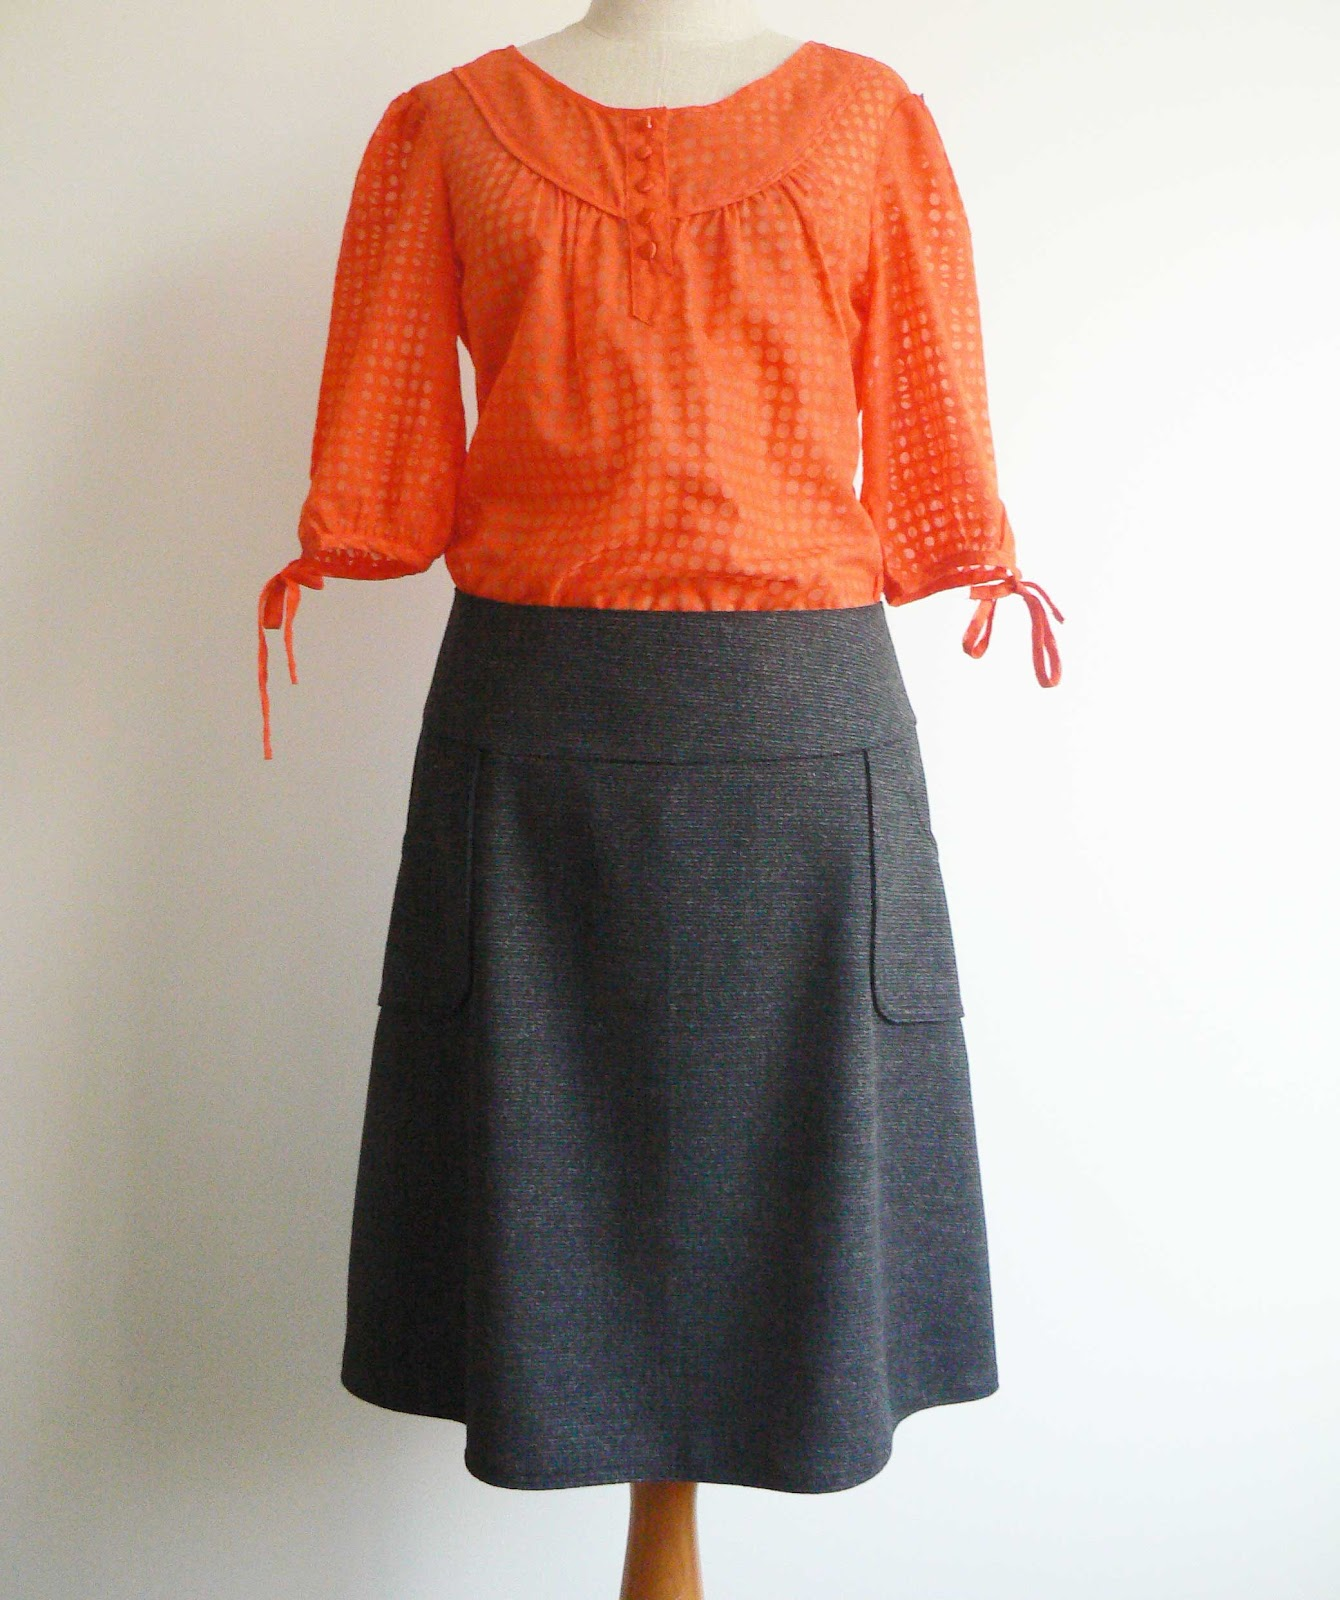 curlypops the make it in may skirt sew along here s mine